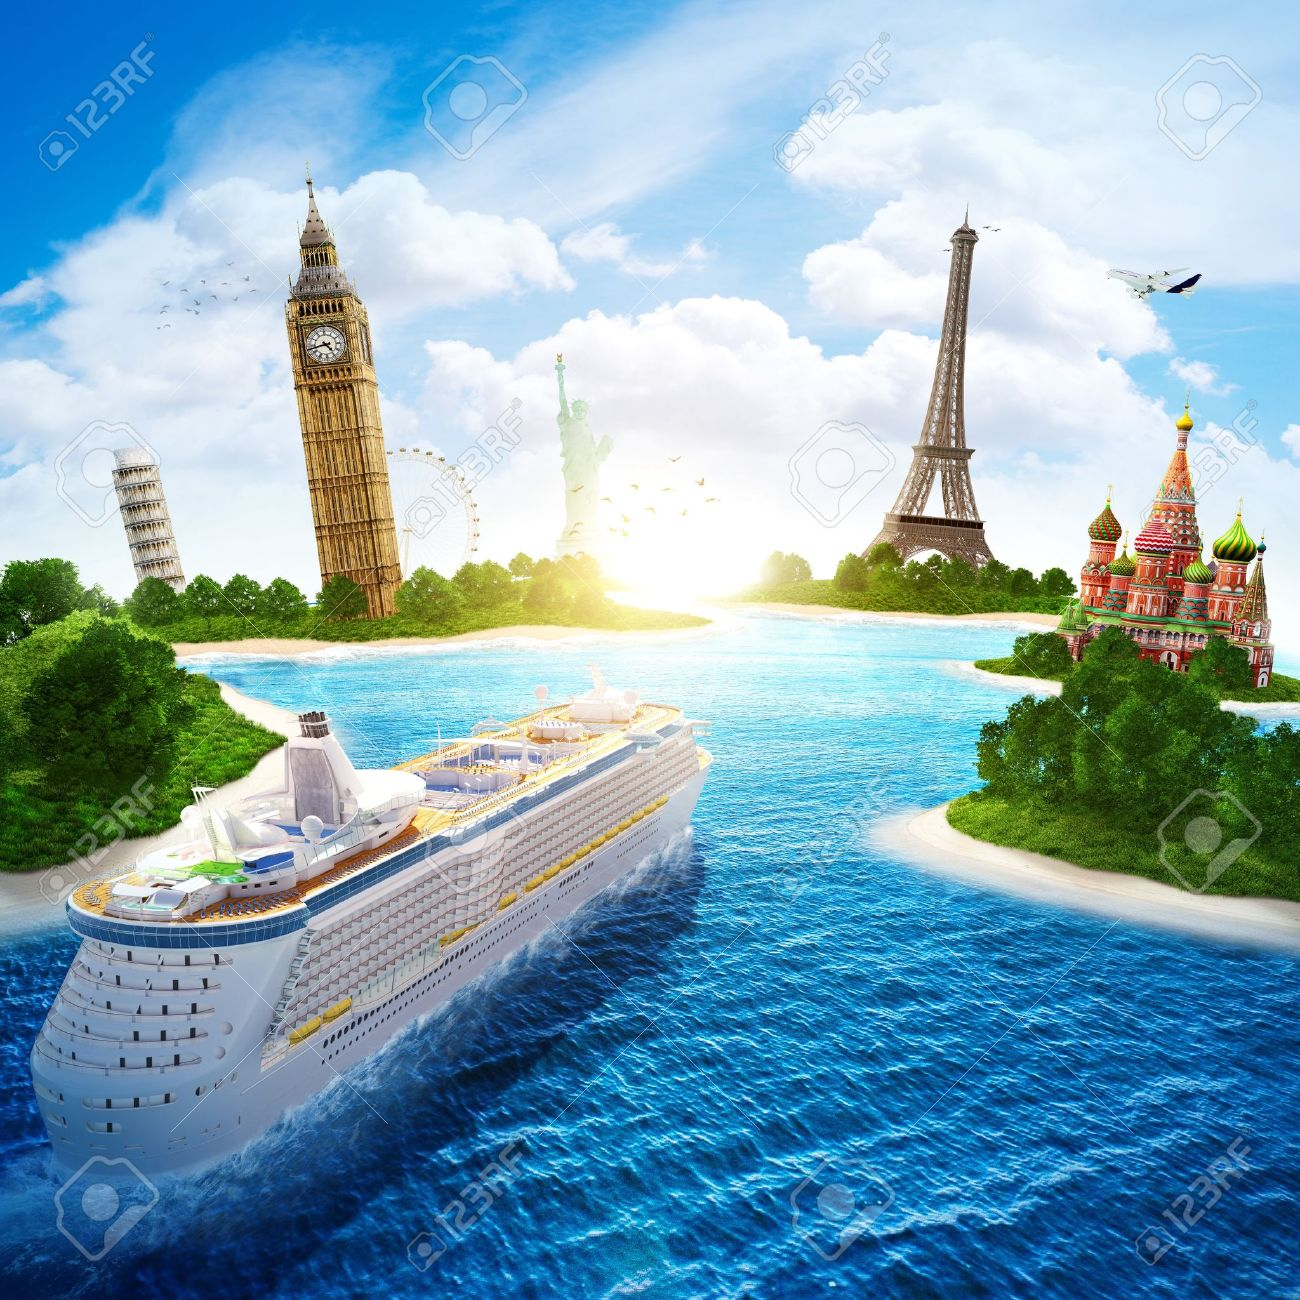 Sea cruise by Europe and countries of the world - 19622844